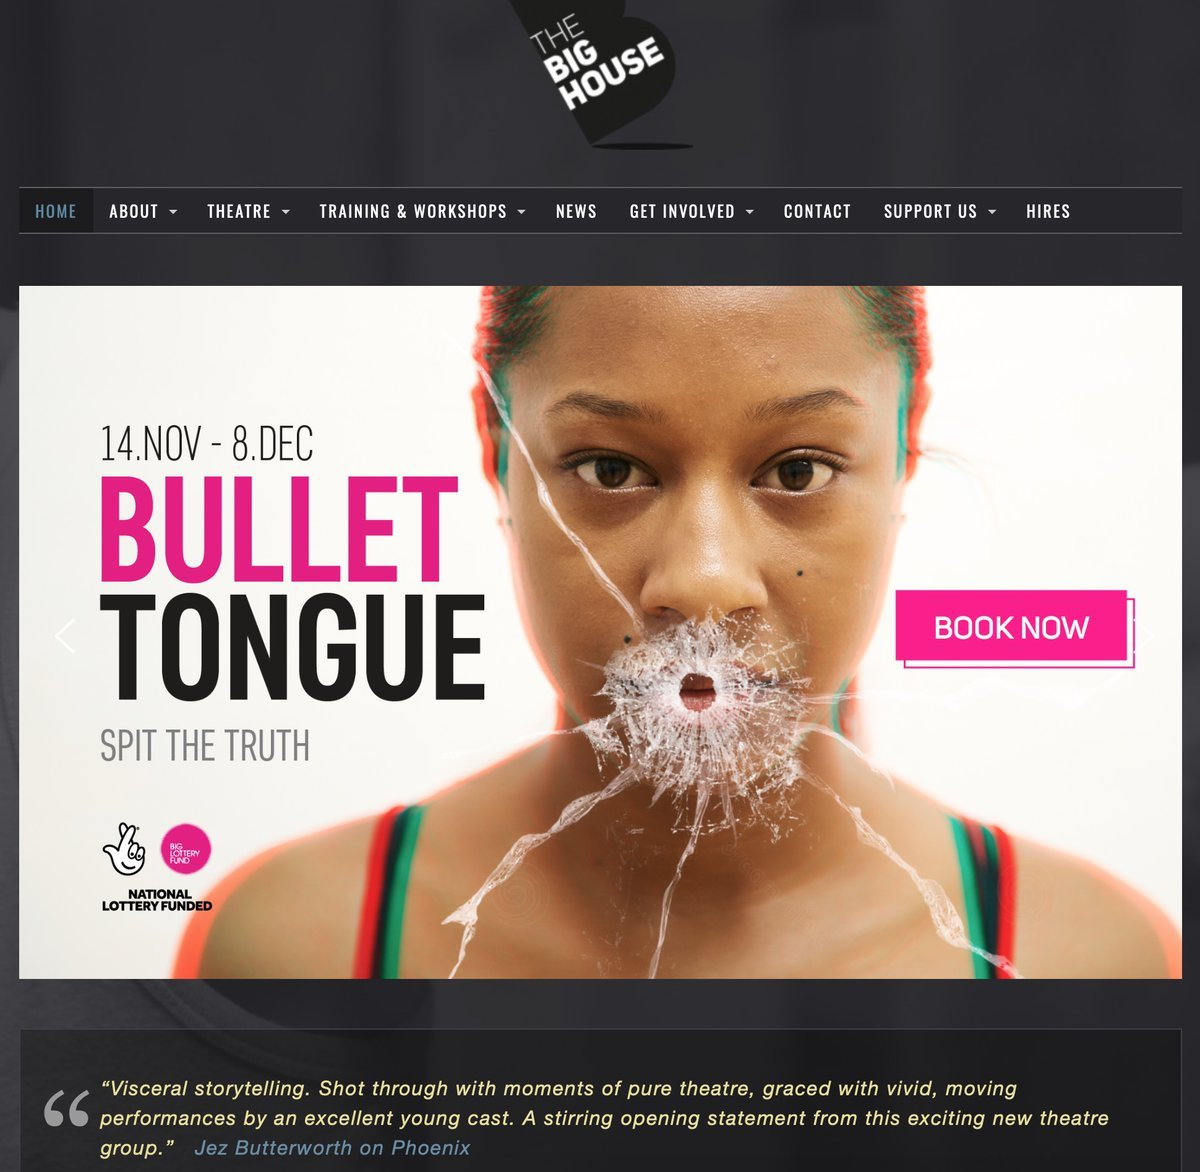 Another fabulous show #bullettongue from @BigHouseTheatre - great acting, edgy and energetic. Book your ticket now!